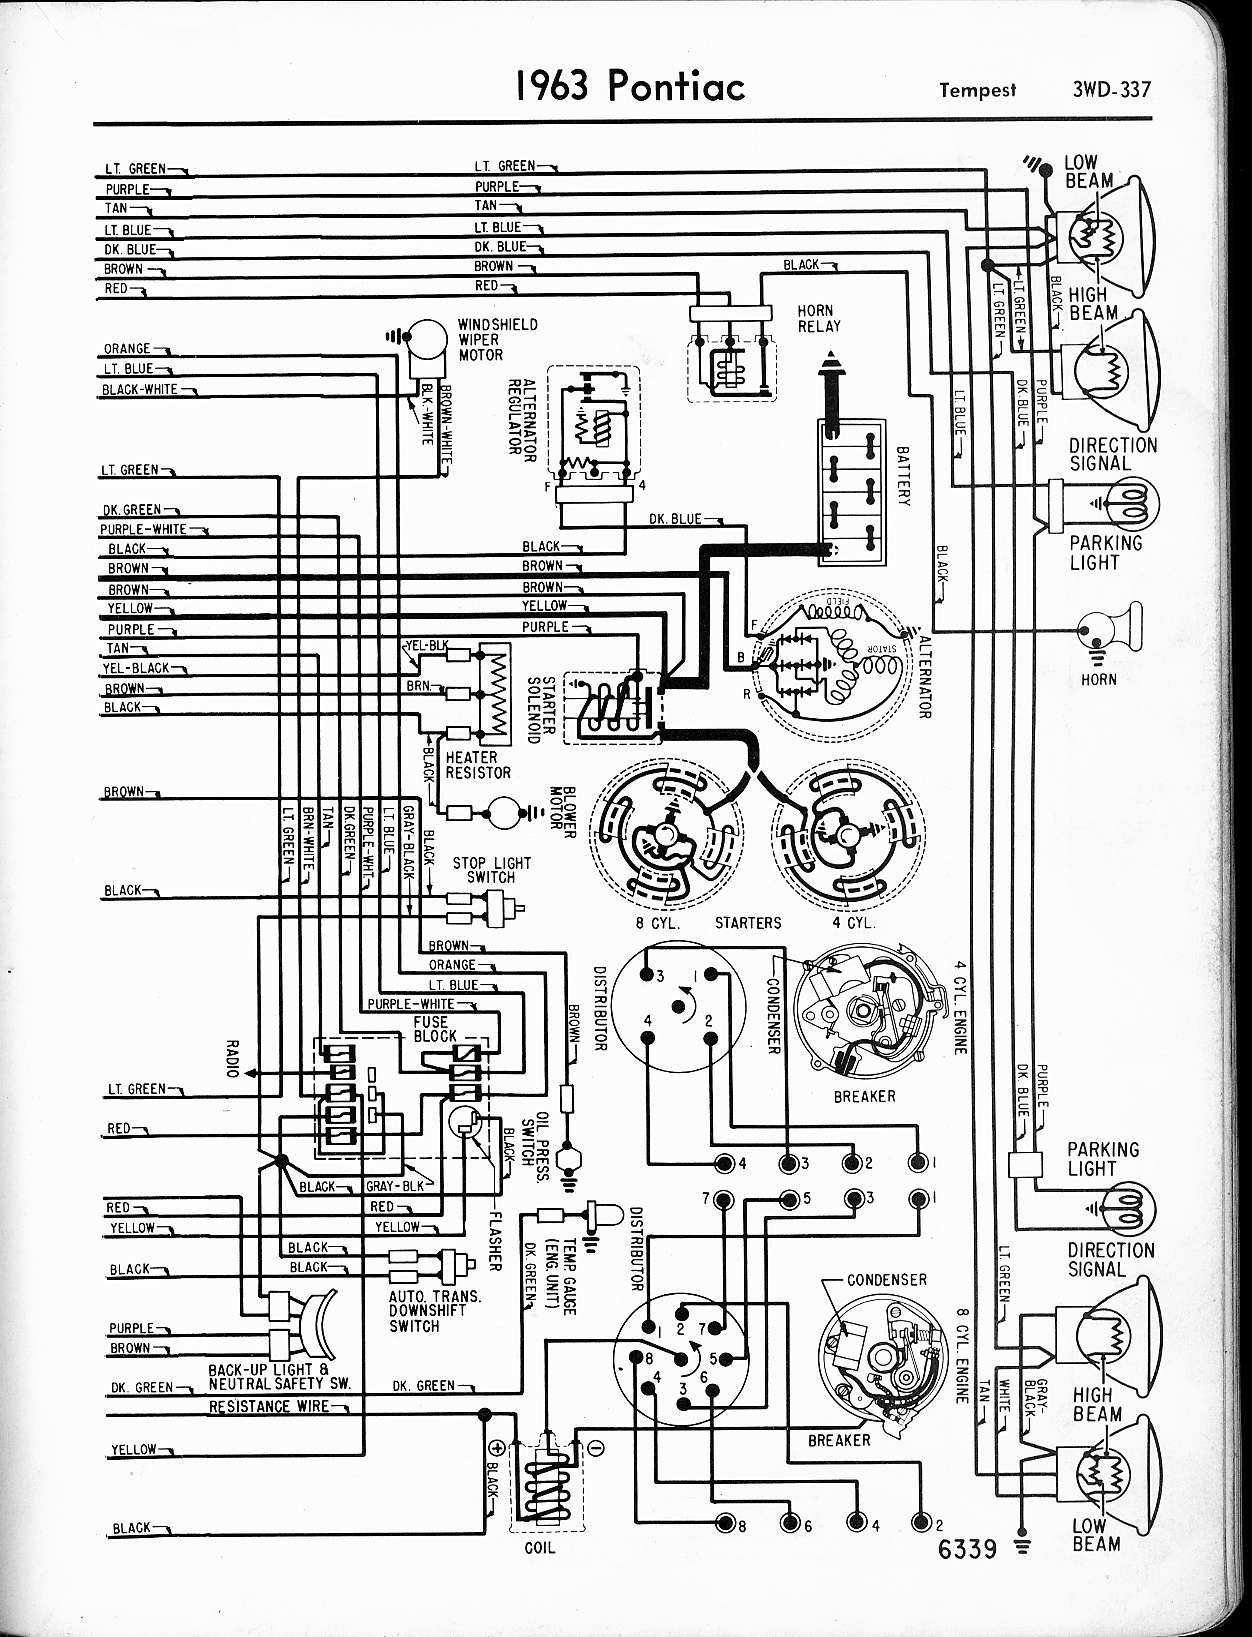 Wallace racing wiring diagrams rh wallaceracing wiring diagram for 1974 pontiac lemans 1970 pontiac lemans